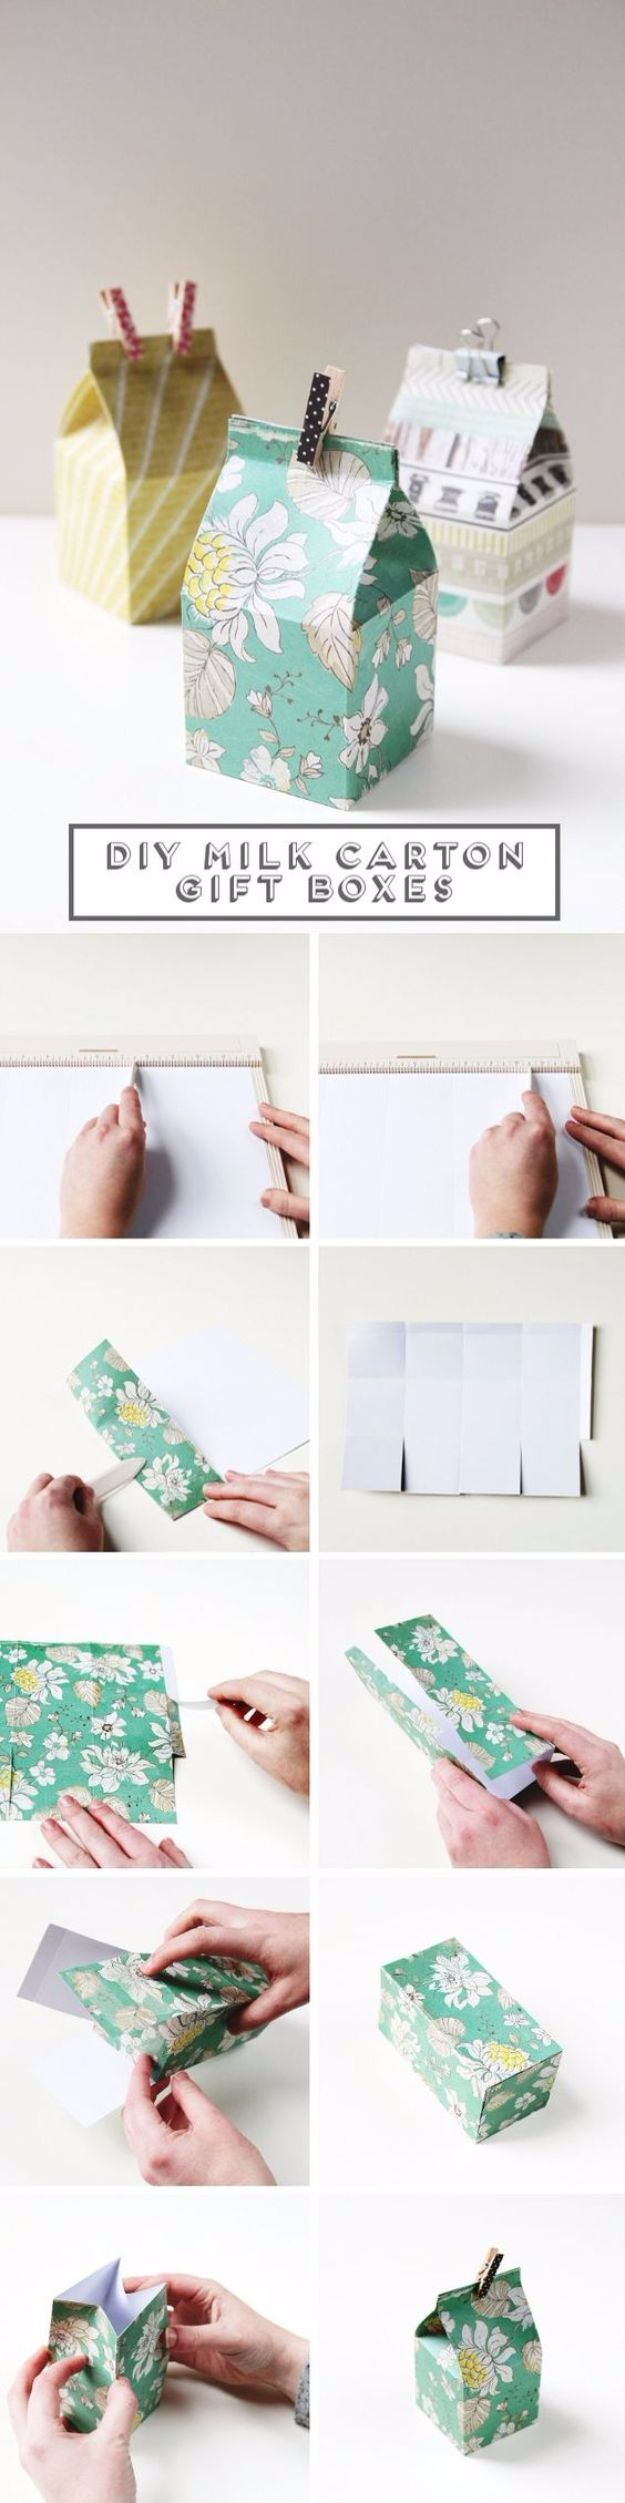 Cool Gift Wrapping Ideas - DIY Mini Milk Carton Gift Boxes - Creative Ways To Wrap Presents on A Budget - Best Christmas Gift Wrap Ideas - How To Make Gift Bags, Reuse Wrapping Paper, Make Bows and Tags - Cute and Easy Ideas for Wrapping Gifts for the Holidays - Step by Step Instructions and Photo Tutorials